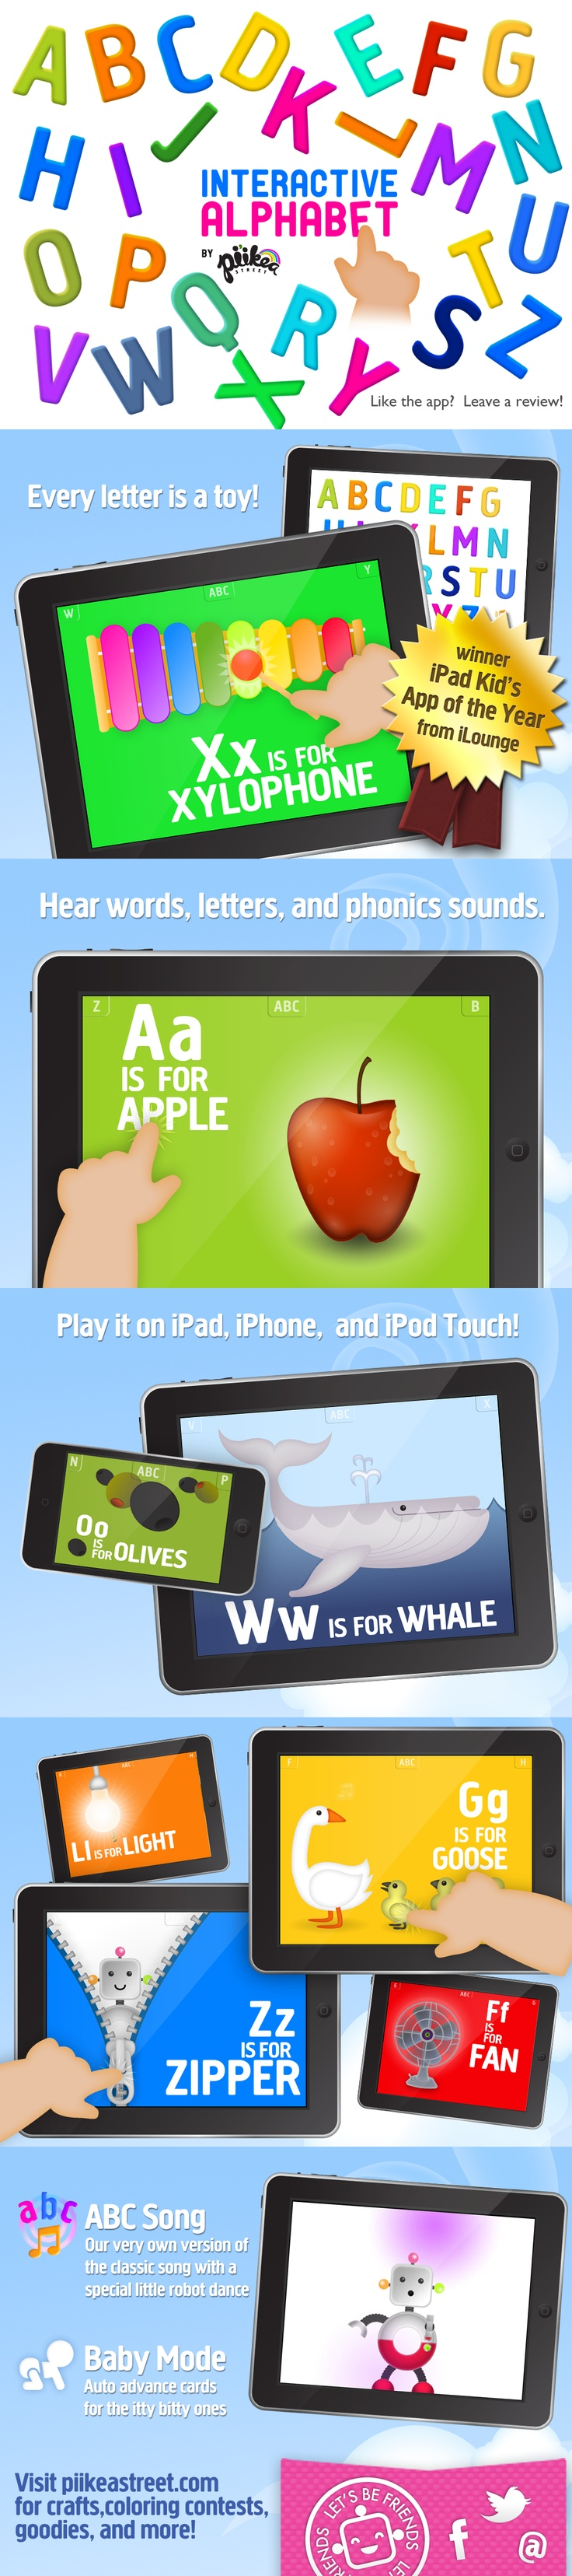 """Pin to #win Pi'ikea Street's Interactive Alphabet #app. Send us a tweet or email the link of your pin to pinterest@piikeastreet.com with subject line of """"Pin it to win it."""" See board description for full details: http://pinterest.com/piikeastreet/pin-it-to-win-it/ #piikeastreet"""